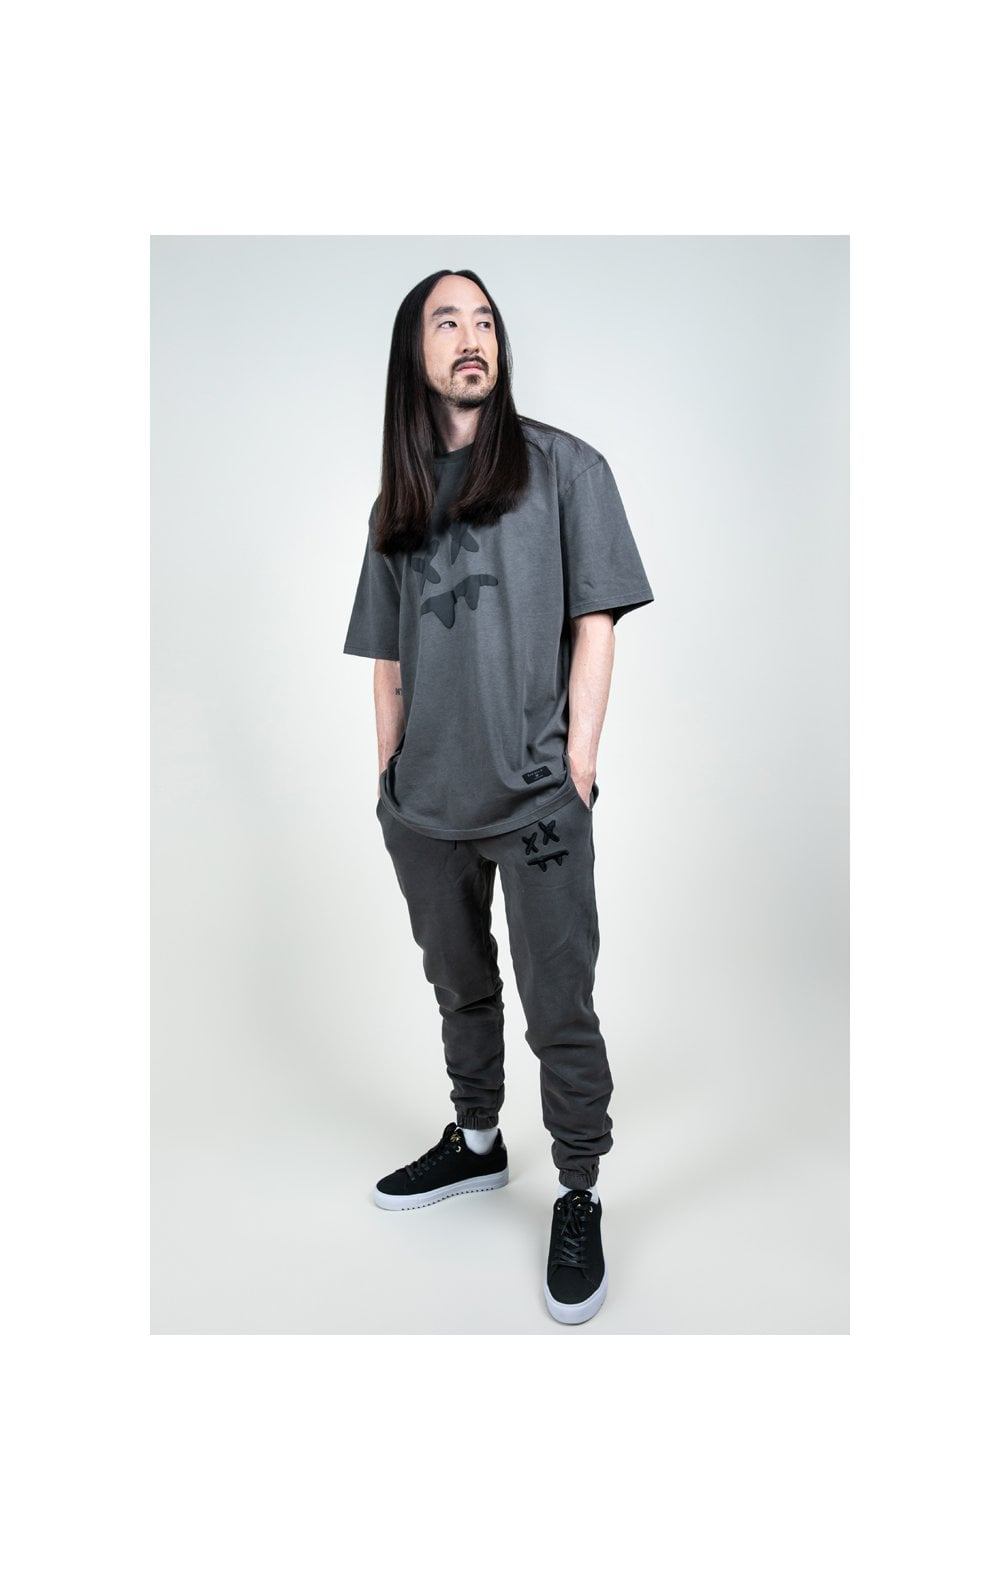 Load image into Gallery viewer, SikSilk X Steve Aoki Joggers - Washed Grey (6)